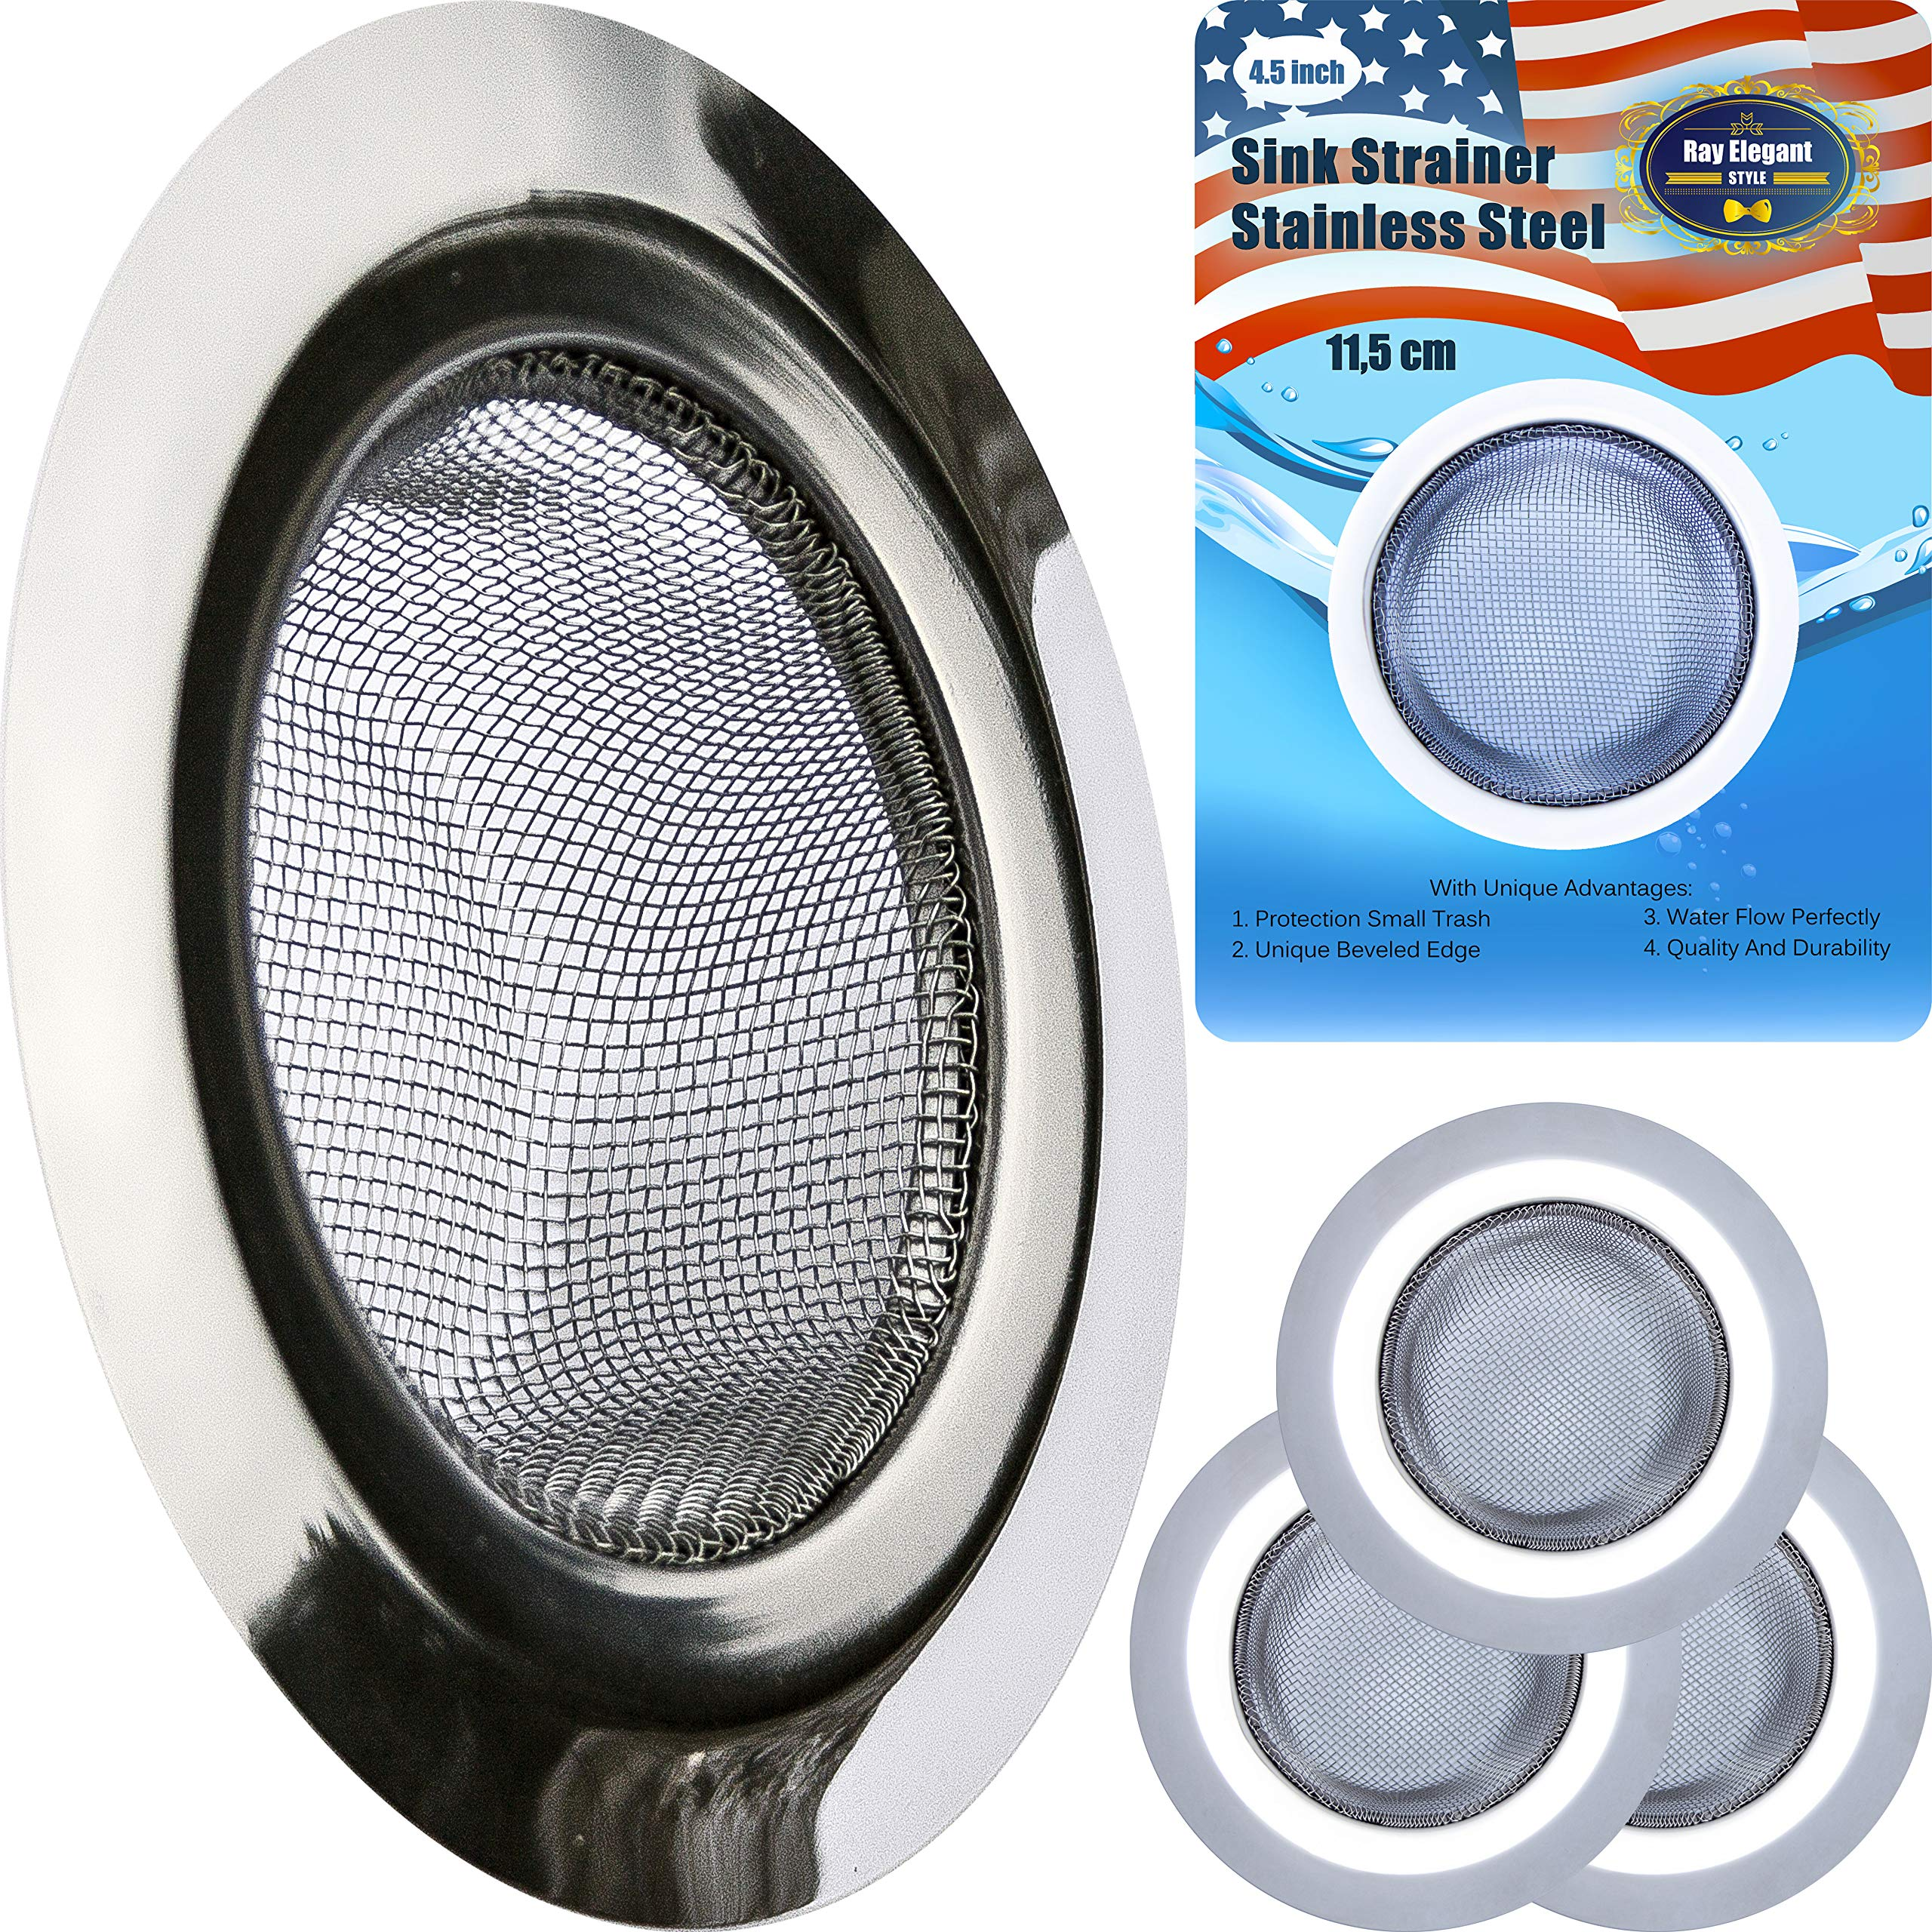 3PCS Kitchen Sink Strainer Stainless Steel - Mesh Sink Drain Strainer with Large Wide Rim 4.5'' by RE-Style